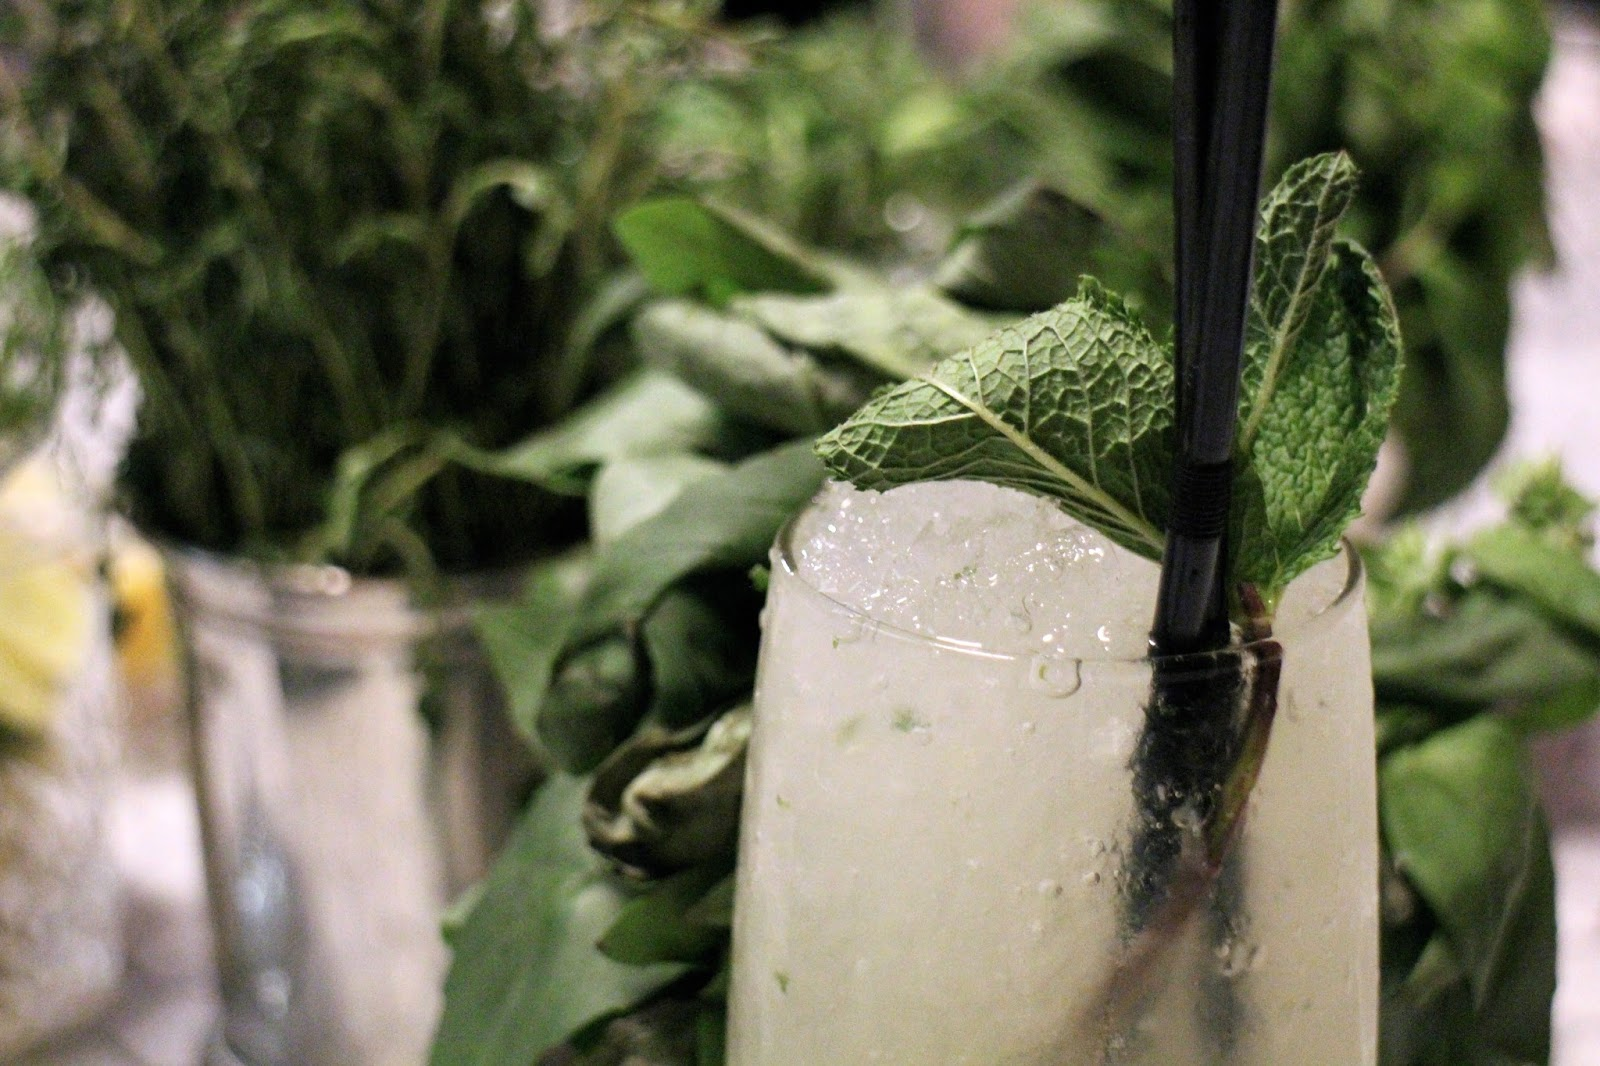 Cocktail close up, greenery and herbs